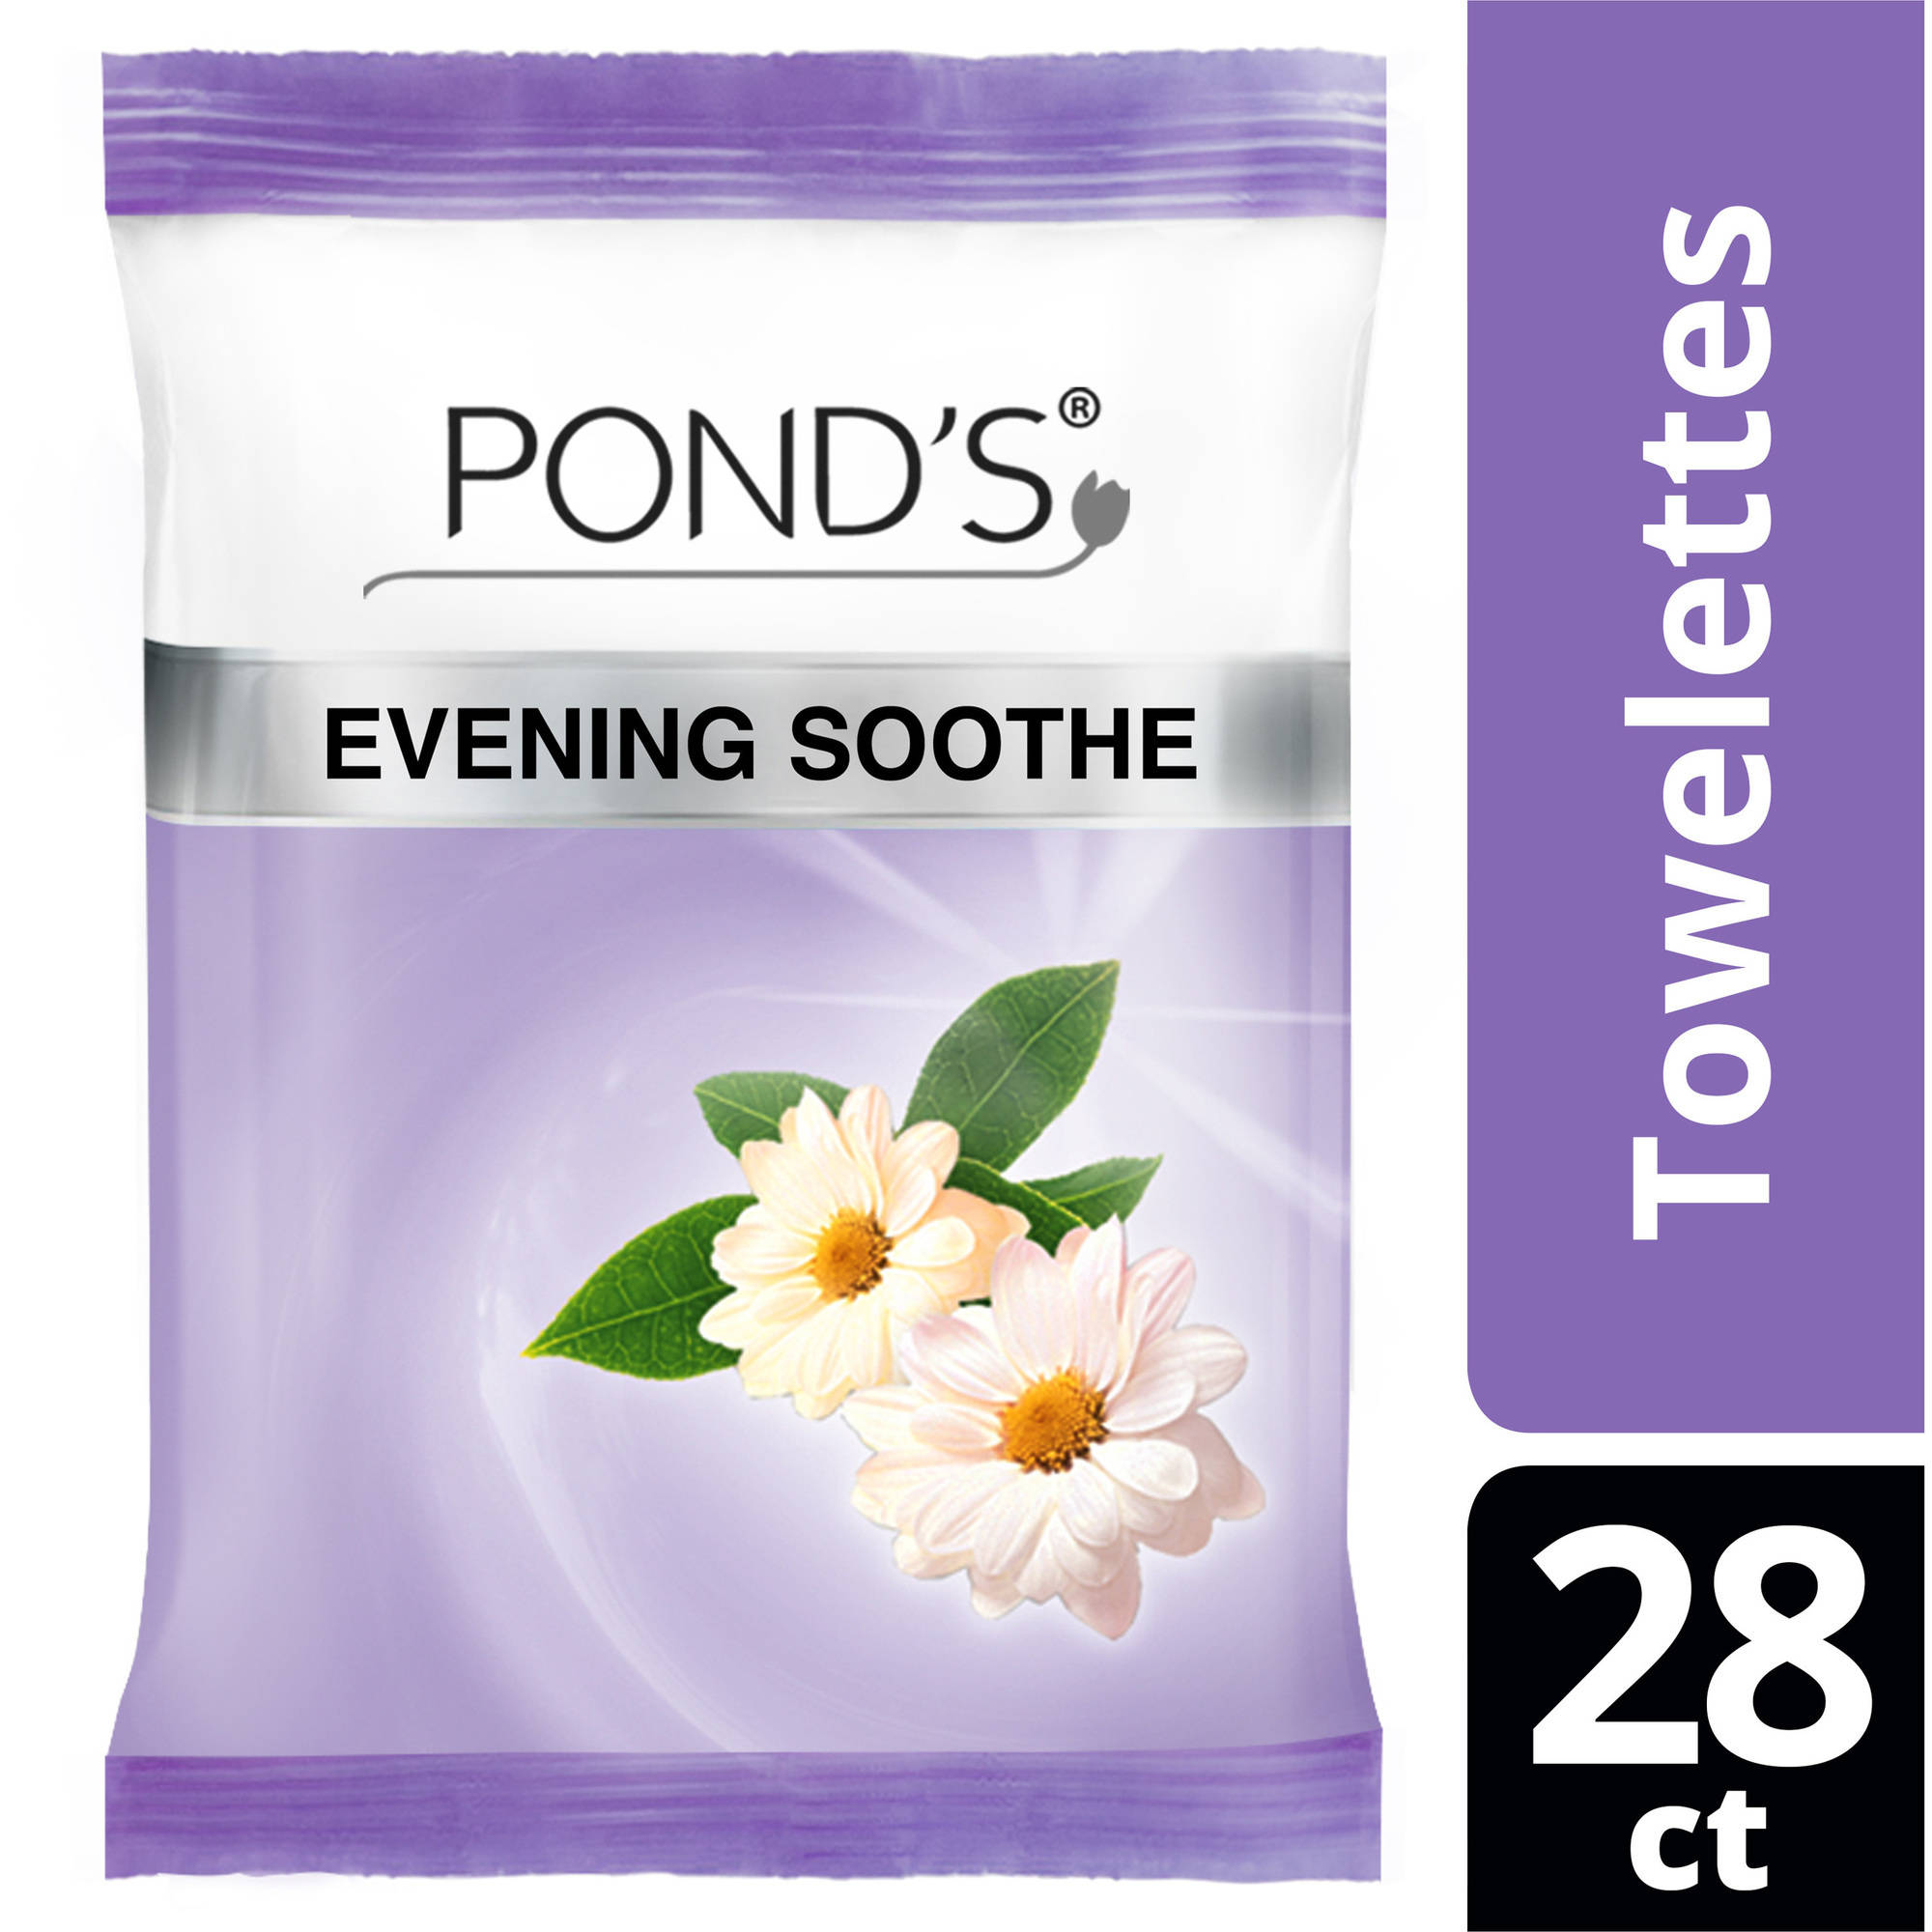 Pond's Evening Soothe Wet Cleansing Towelettes, 30 ct